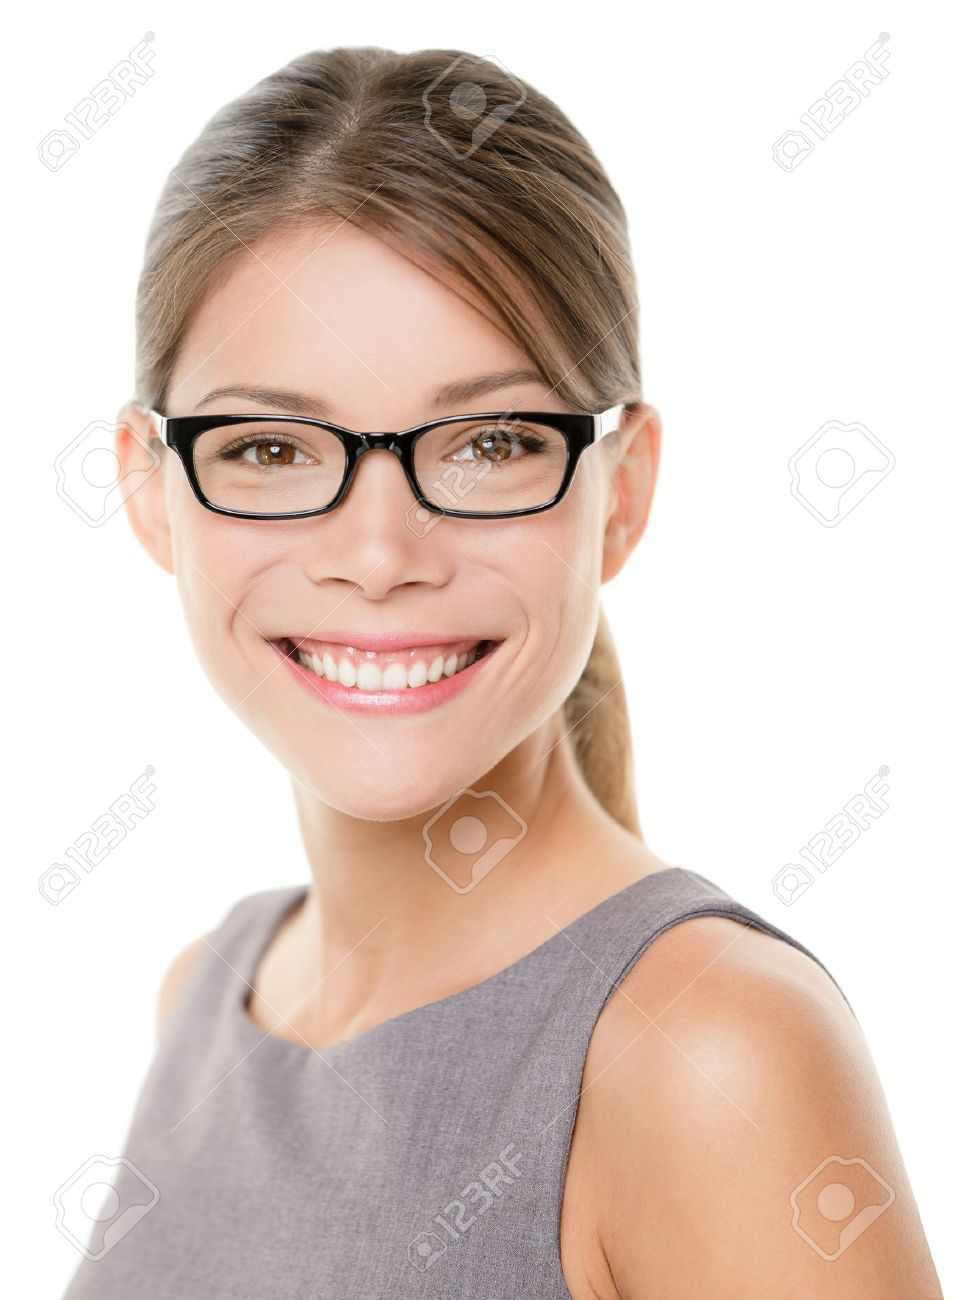 Glasses Eyewear Woman Happy Portrait Looking At Camera With Big ...